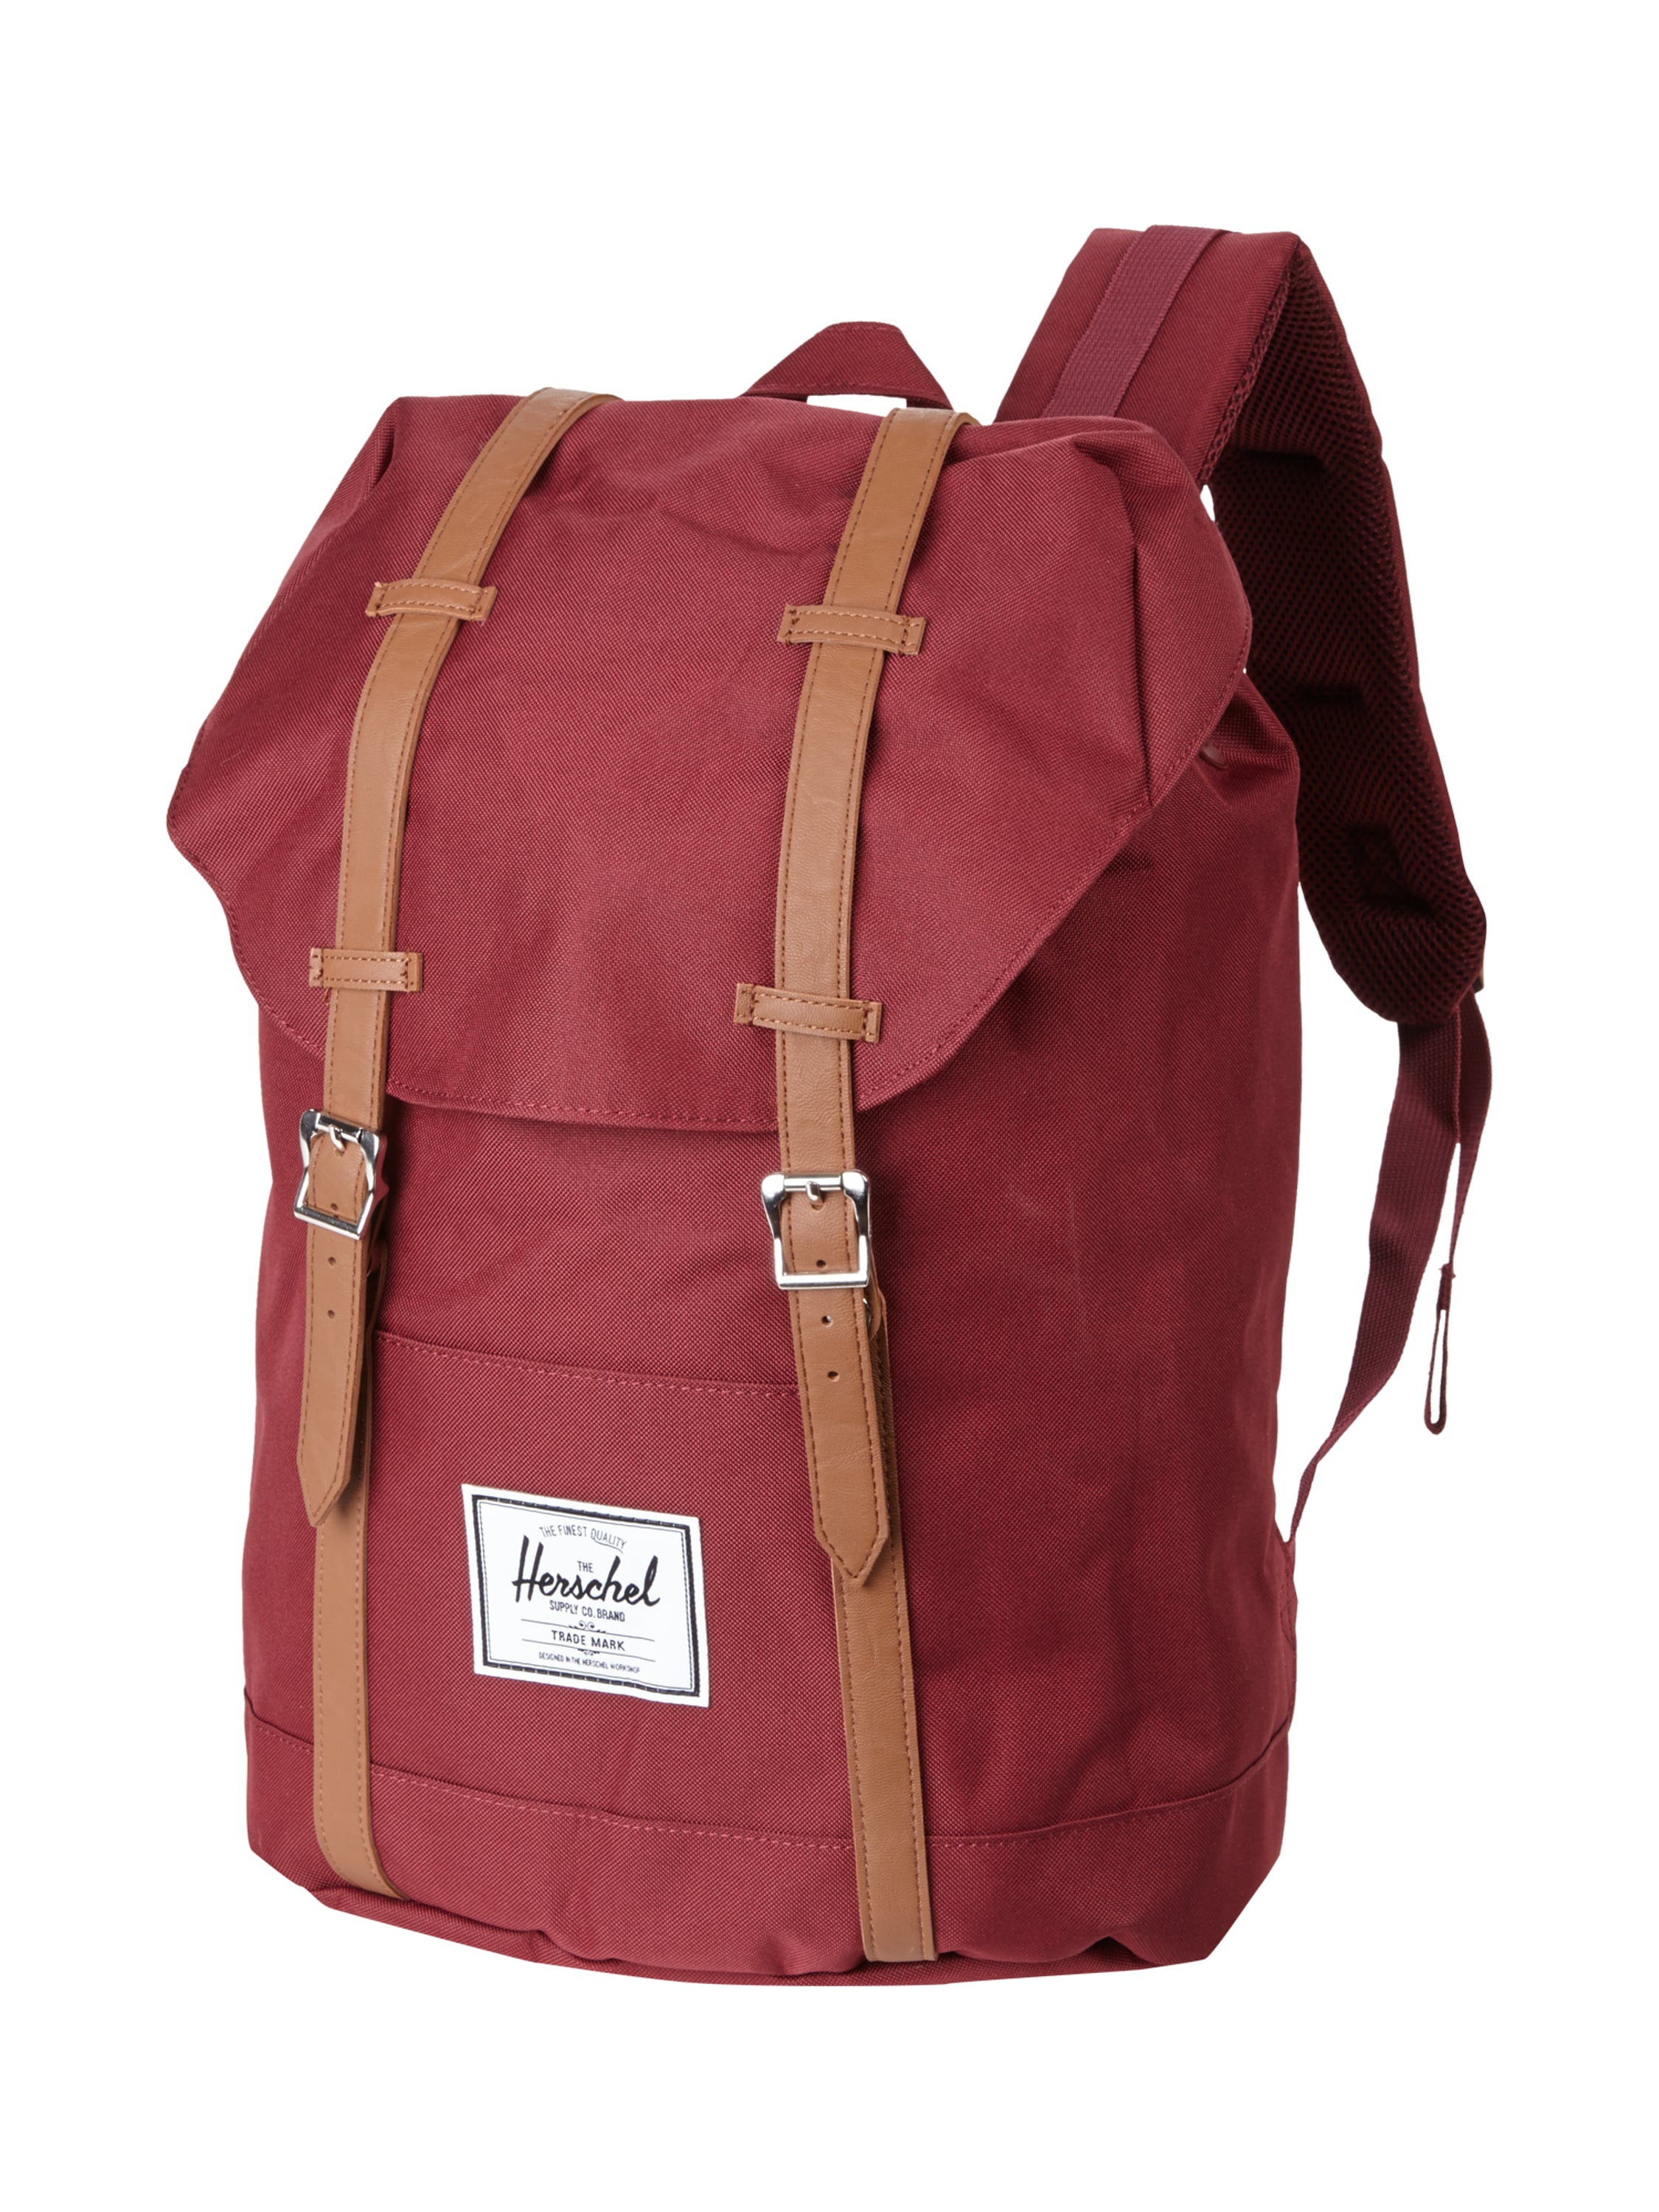 herschel rucksack mit laptopfach in rot online kaufen 9309724 p c online shop. Black Bedroom Furniture Sets. Home Design Ideas